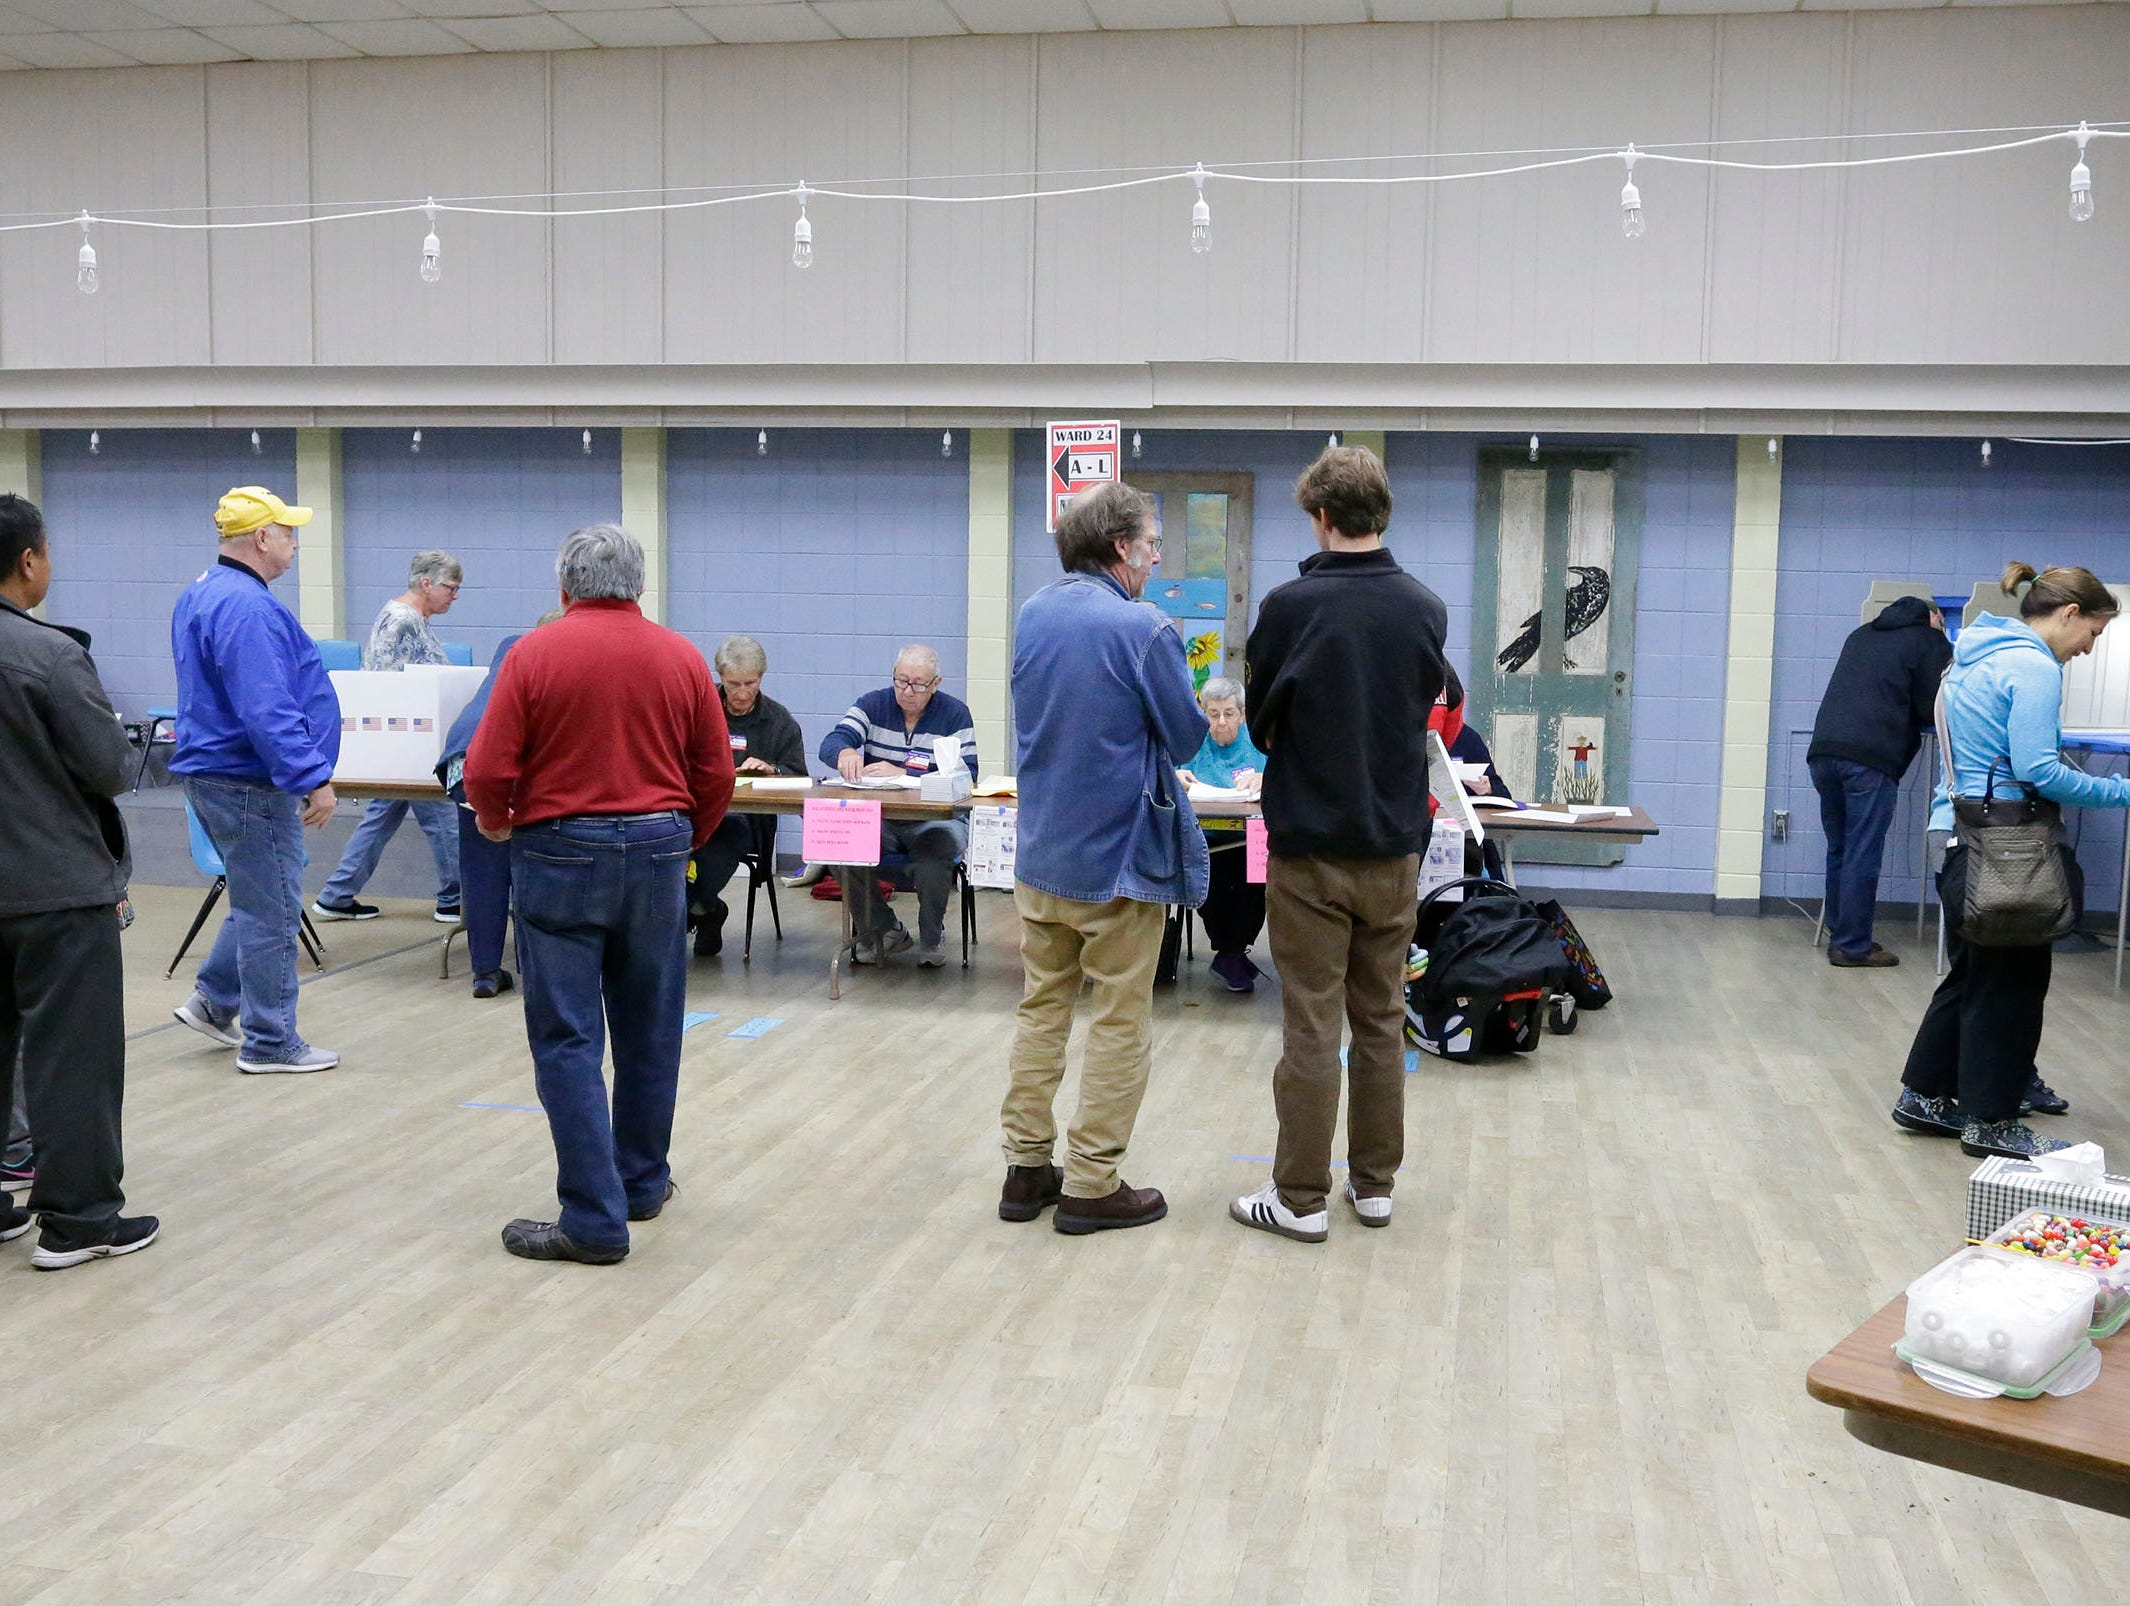 People wait to vote at the Senior Activity Center poll, Tuesday, November 6, 2018, in Sheboygan, Wis.